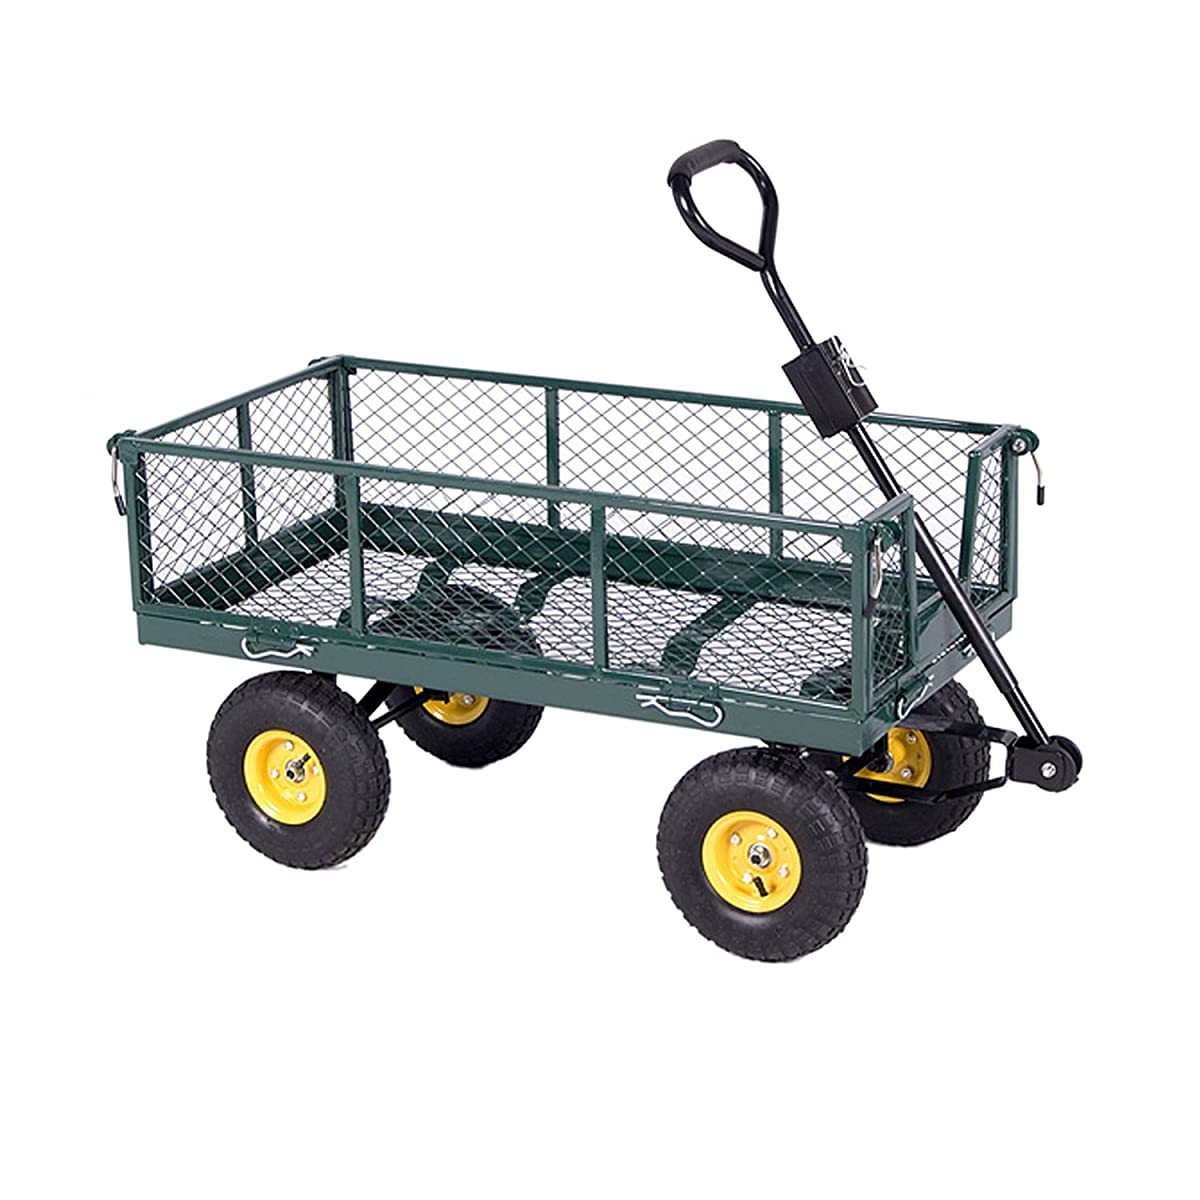 ALEKO TC4206 Farm & Ranch, Heavy Duty Removable Steel Mesh Sides Flatbed Garden Mesh Cart With Padded Pull Handle, 800 lb Capacity